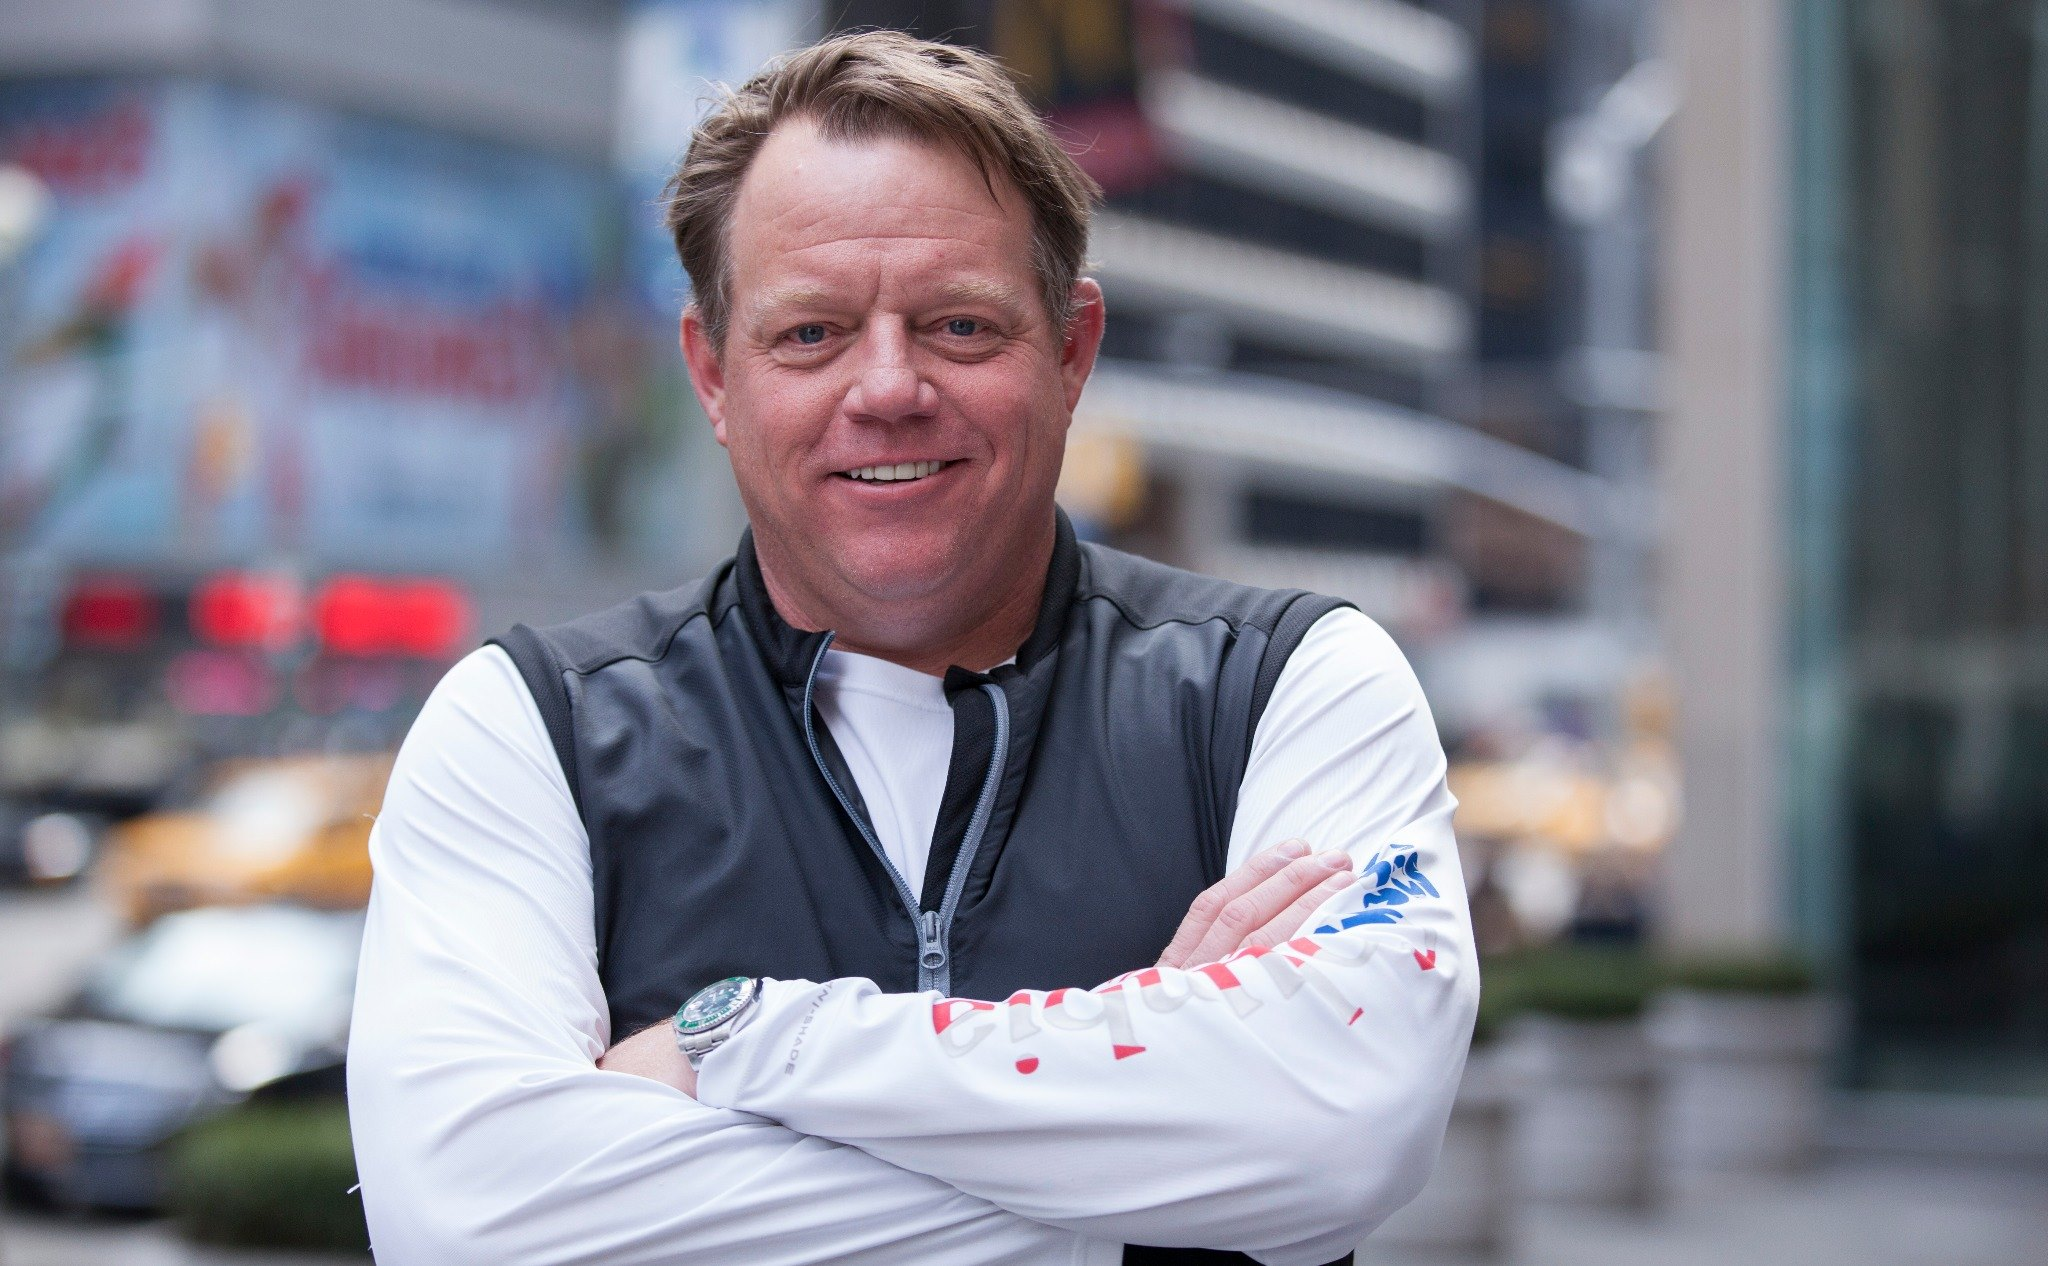 Pat Green Will Be Grand Marshal Of 128th Annual Battle Of